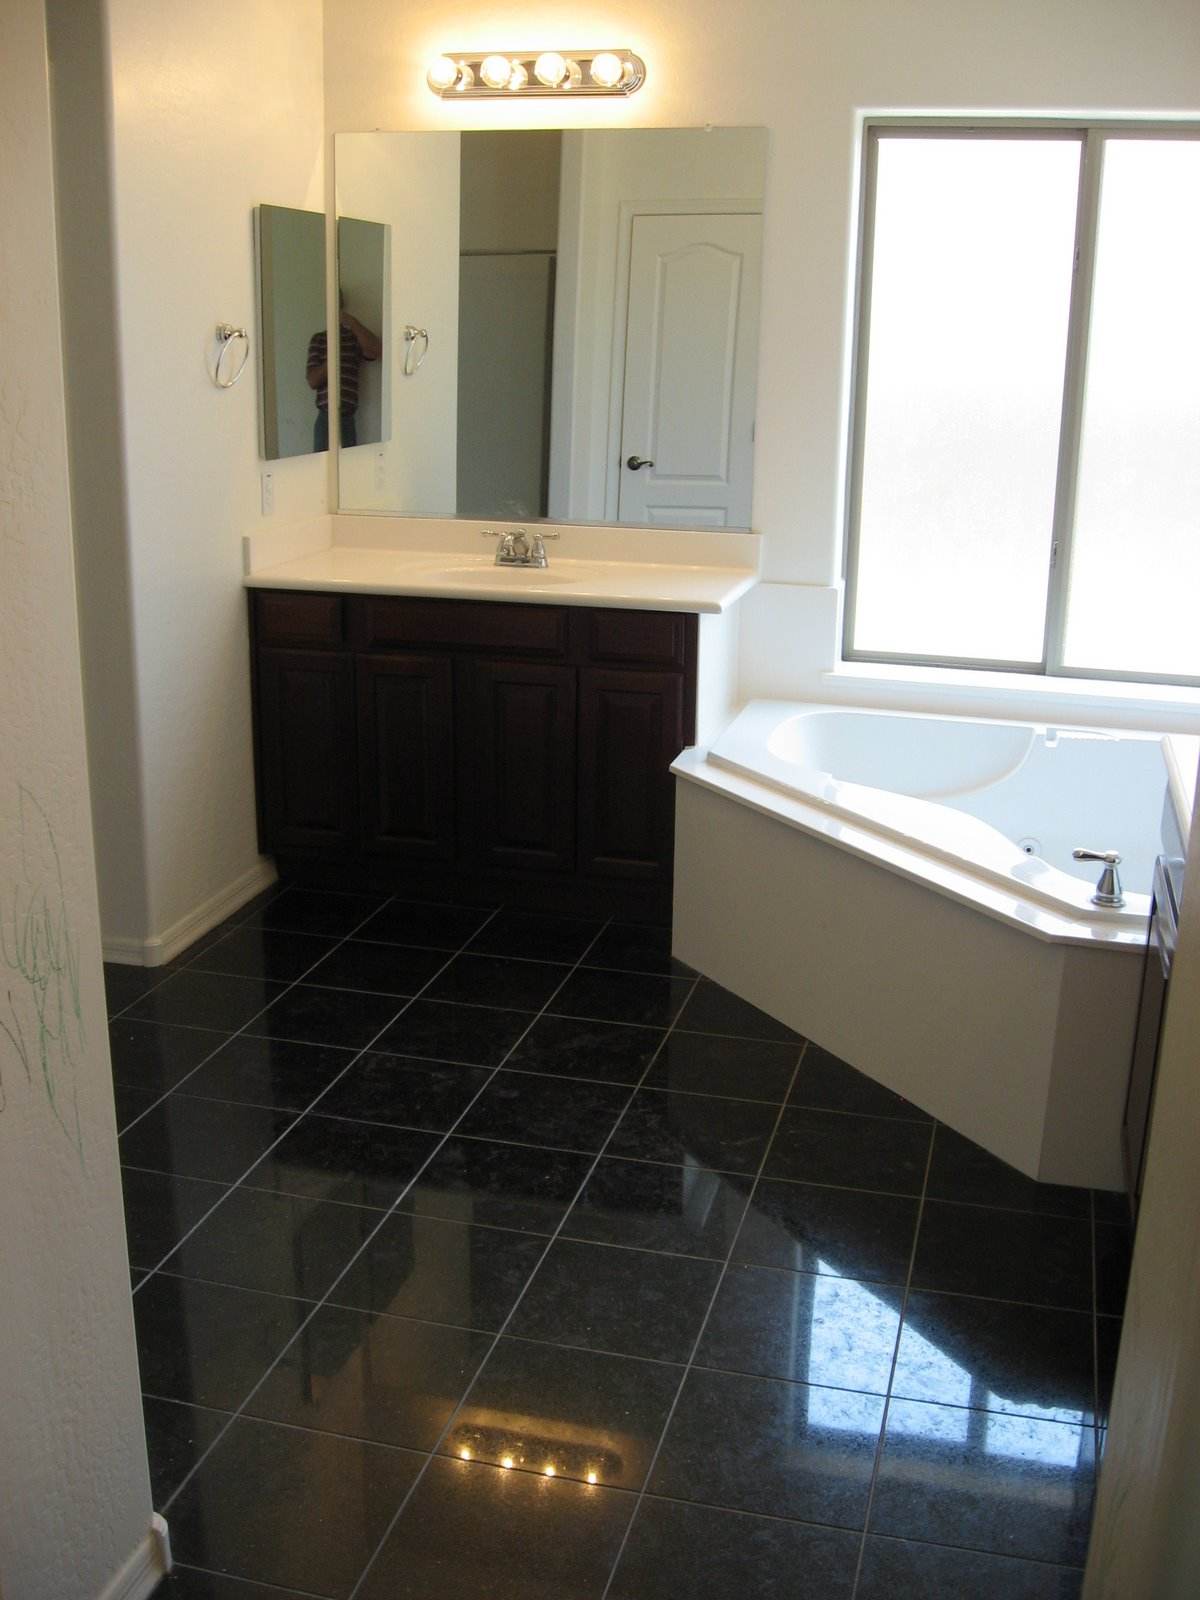 Floor Tiles Related Keywords Suggestions Black Granite Floor Tiles